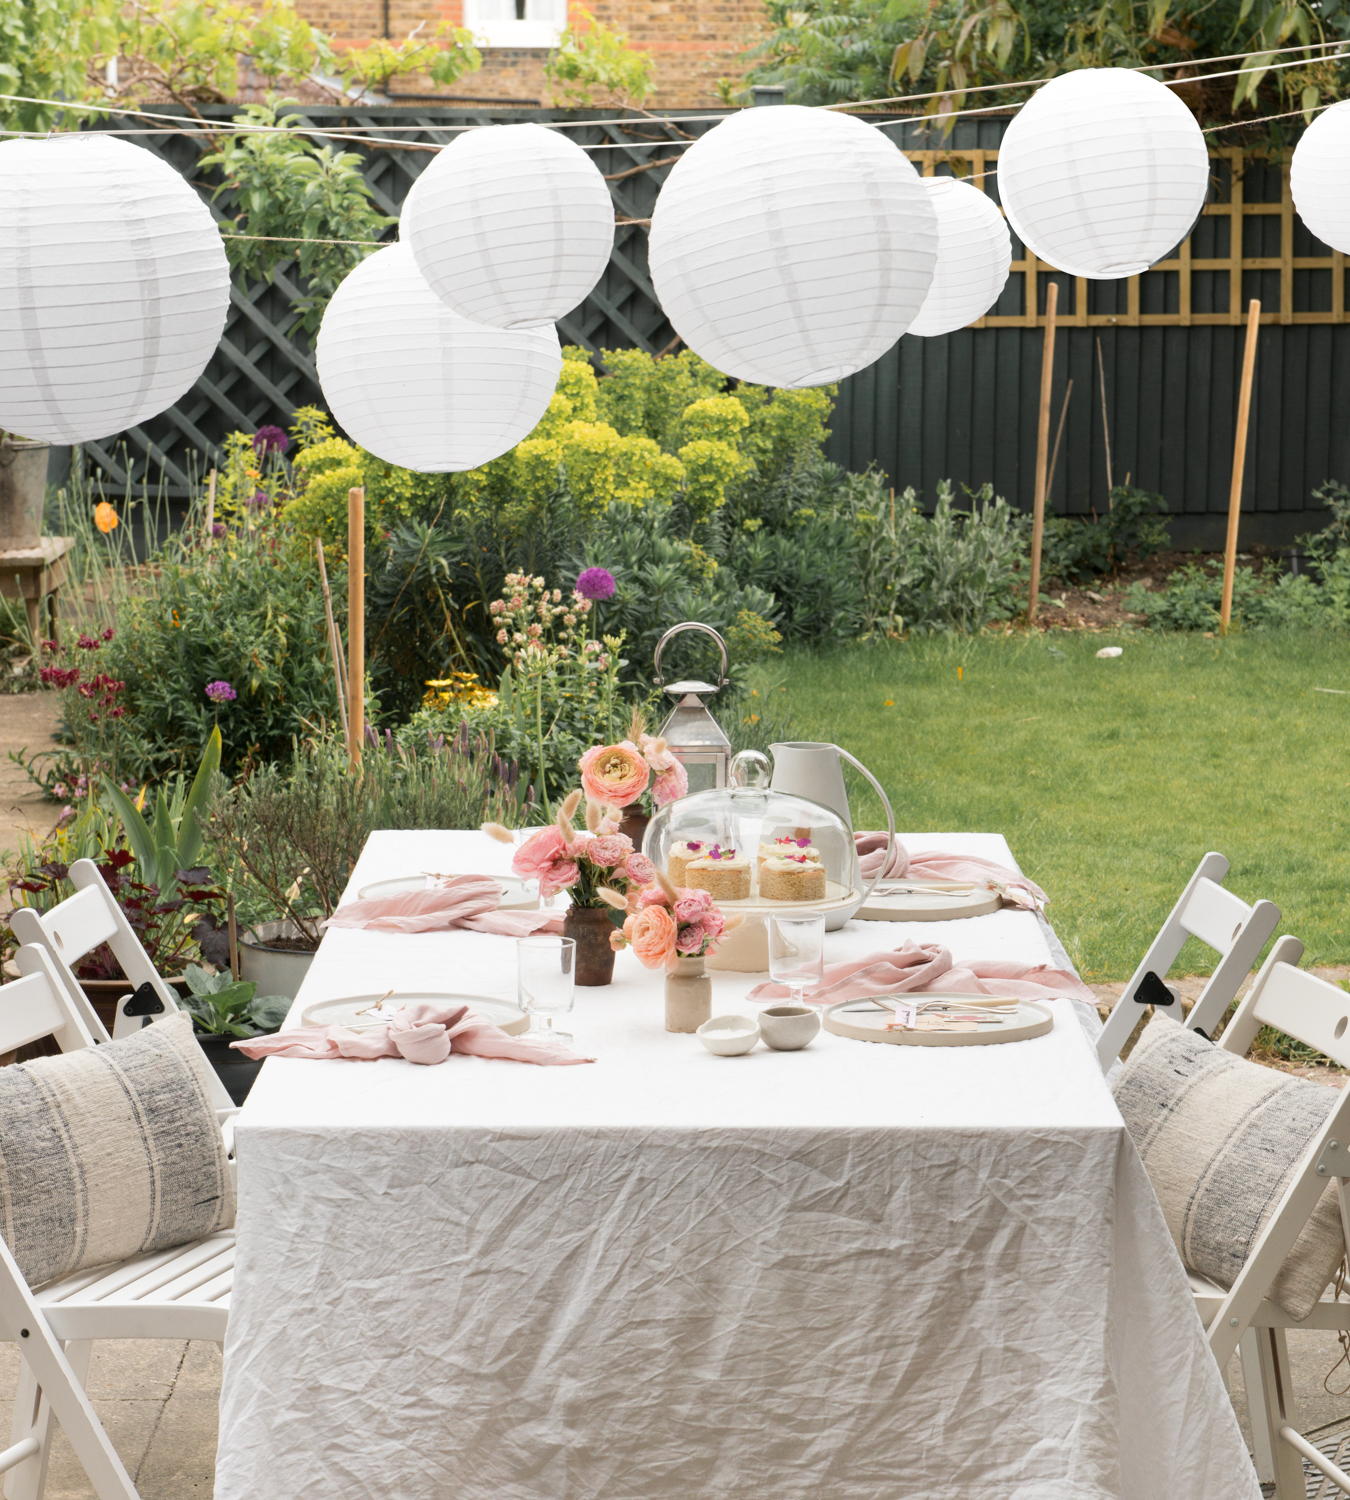 How to lay an outdoor table, white paper lanterns, garden afternoon tea, tips from a stylist, how to style a table, garden afternoon tea